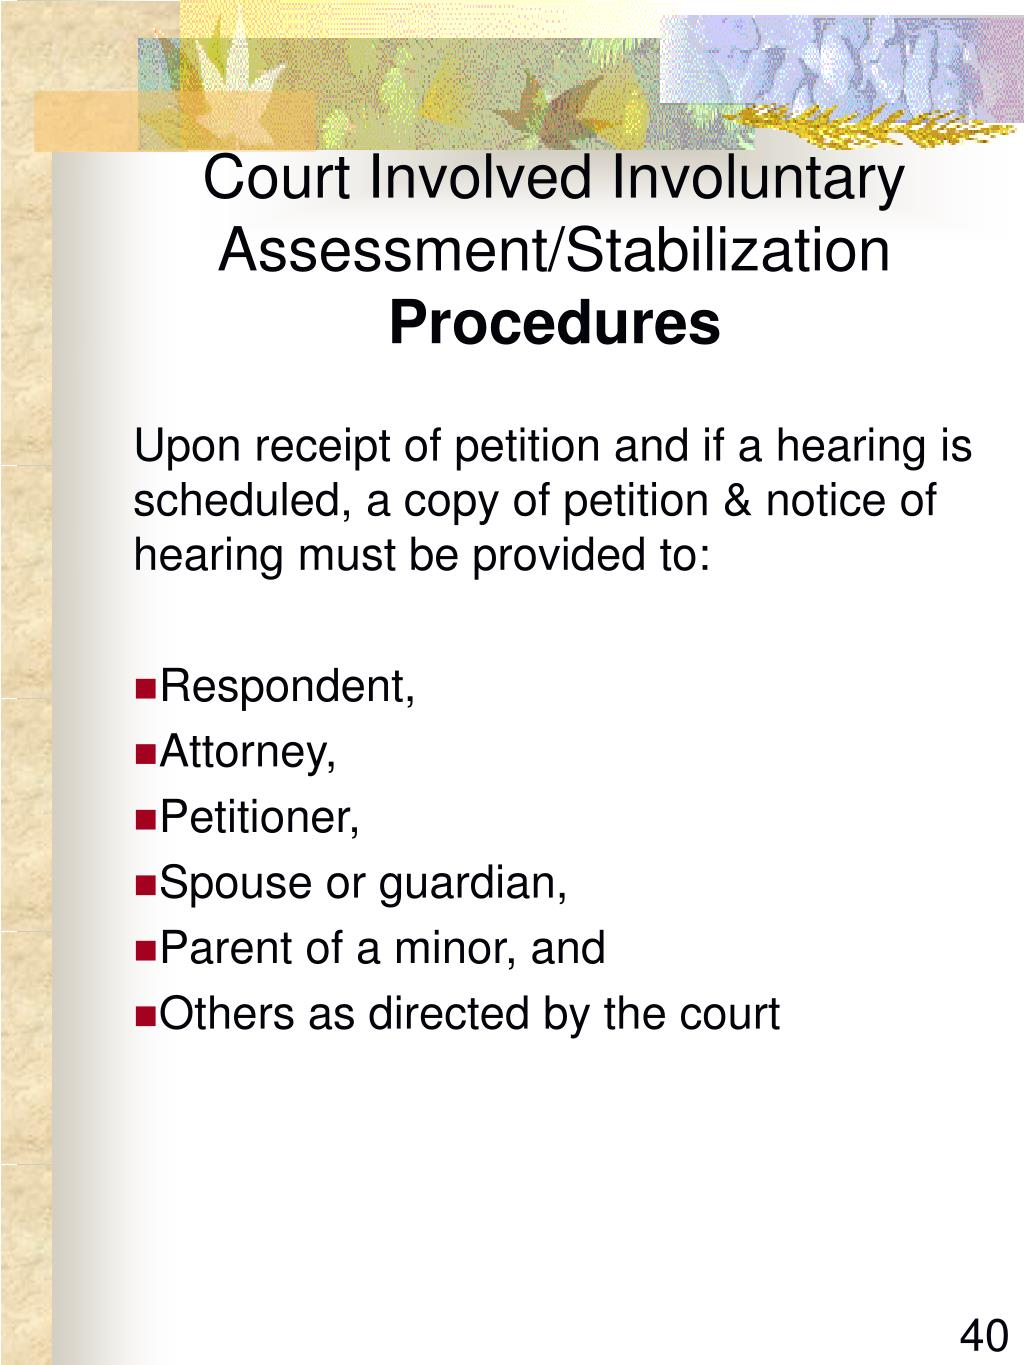 Court Involved Involuntary Assessment/Stabilization